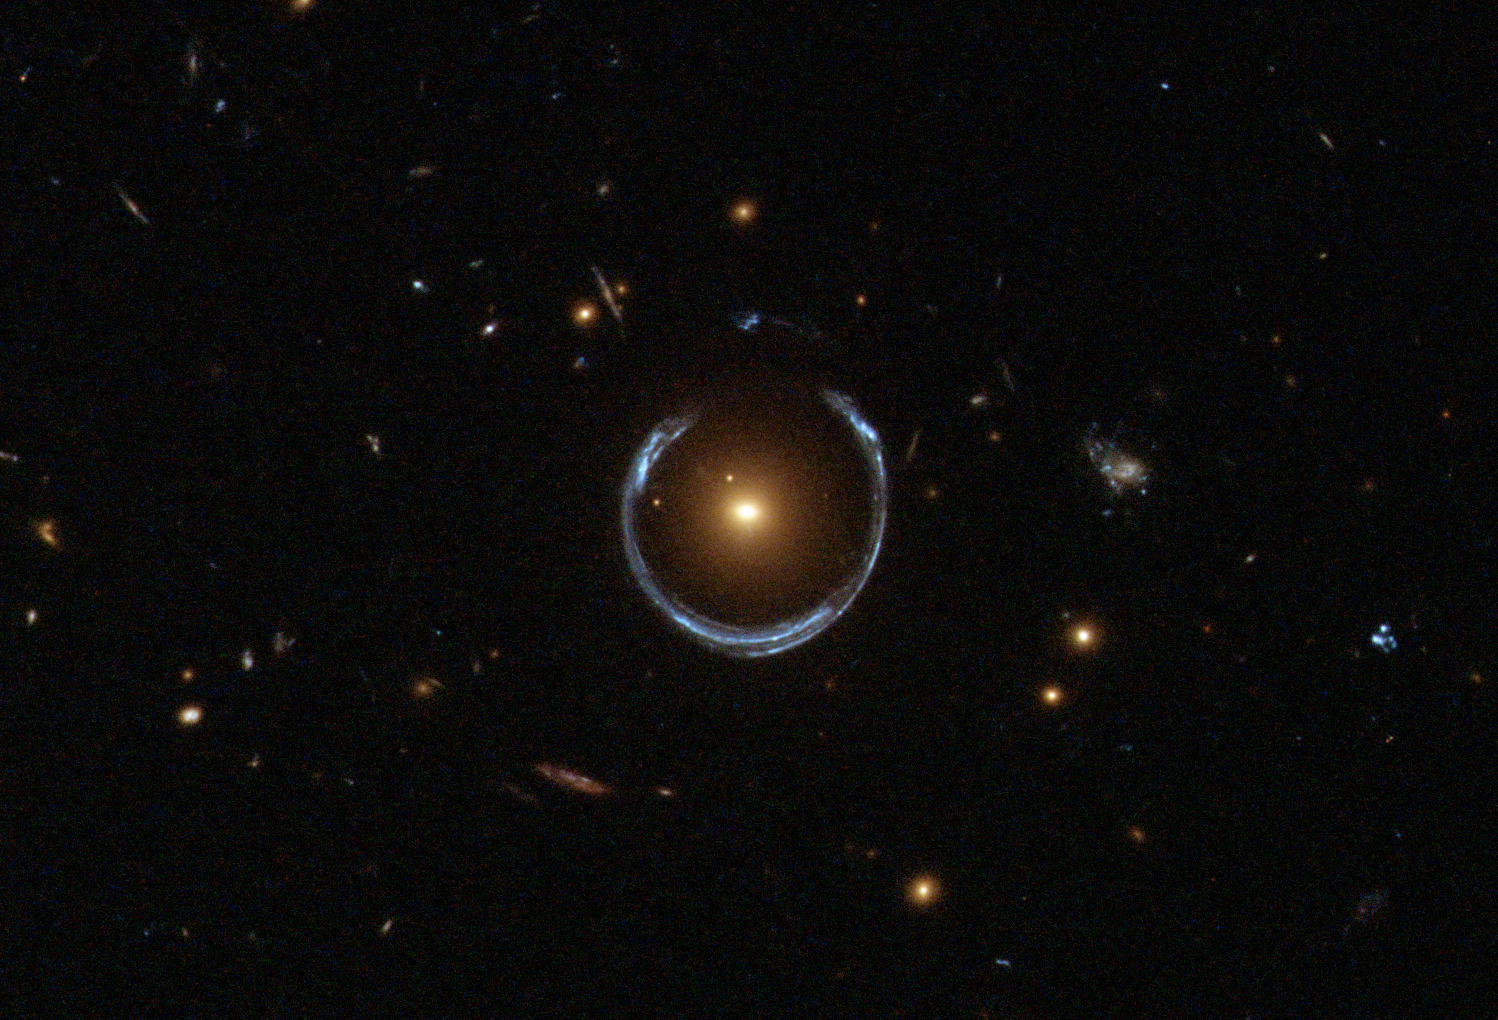 a gravitational lens the nearer red galaxy has bent the light of the more distant blue galaxy around it in a horseshoe shape image nasa apod - Astronomy Jobs At Nasa